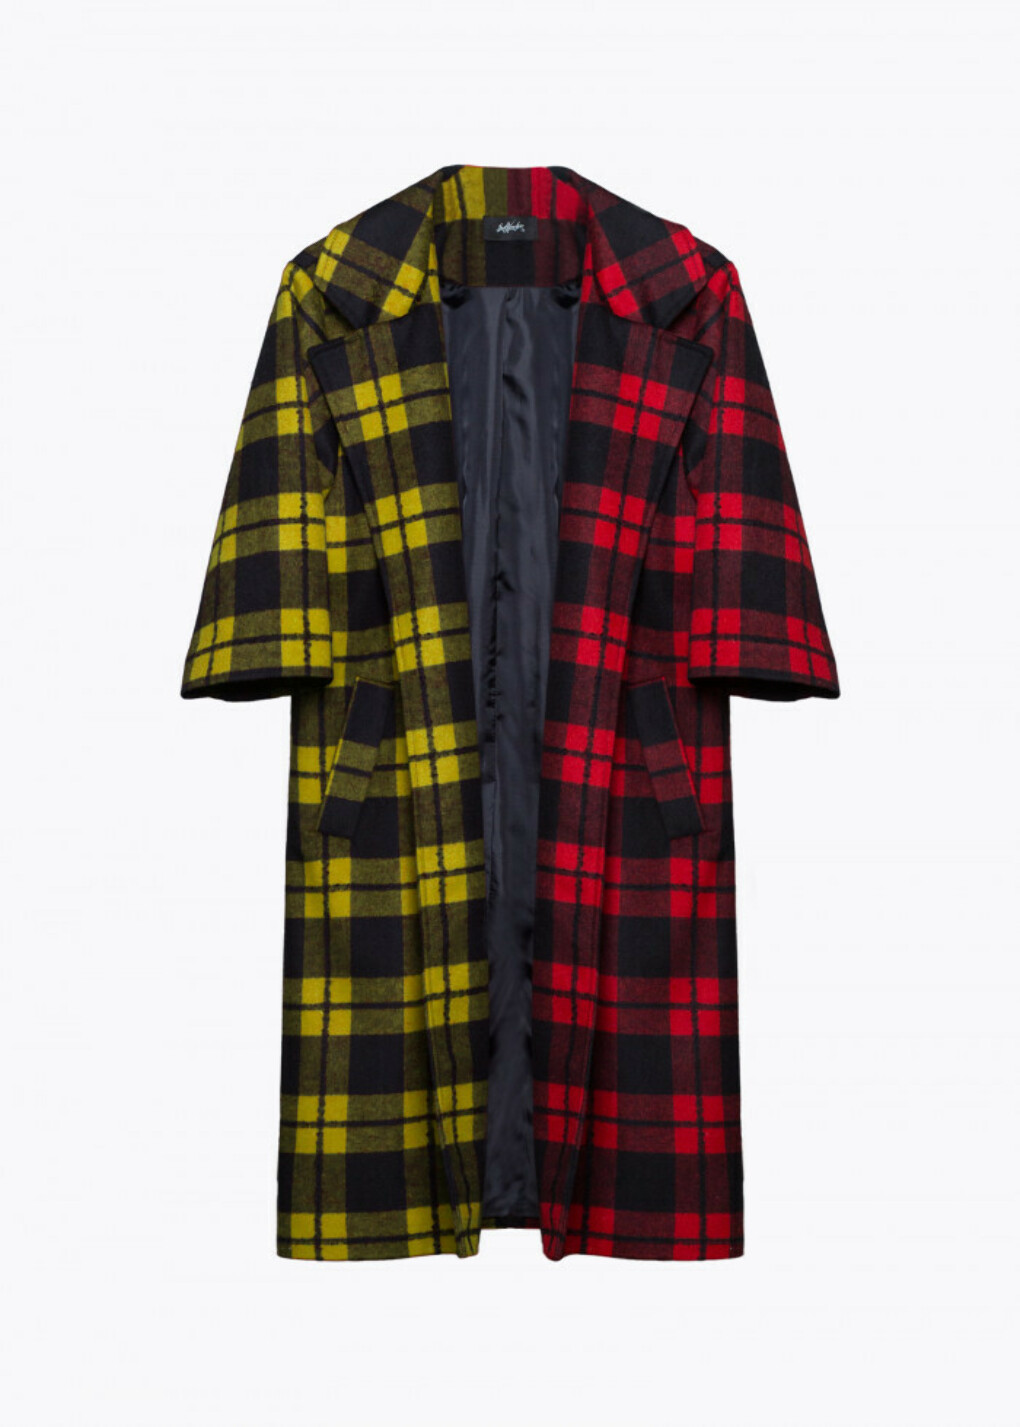 CHECKED OVERCOAT 3/4 SLEEVE. RED/YELLOW